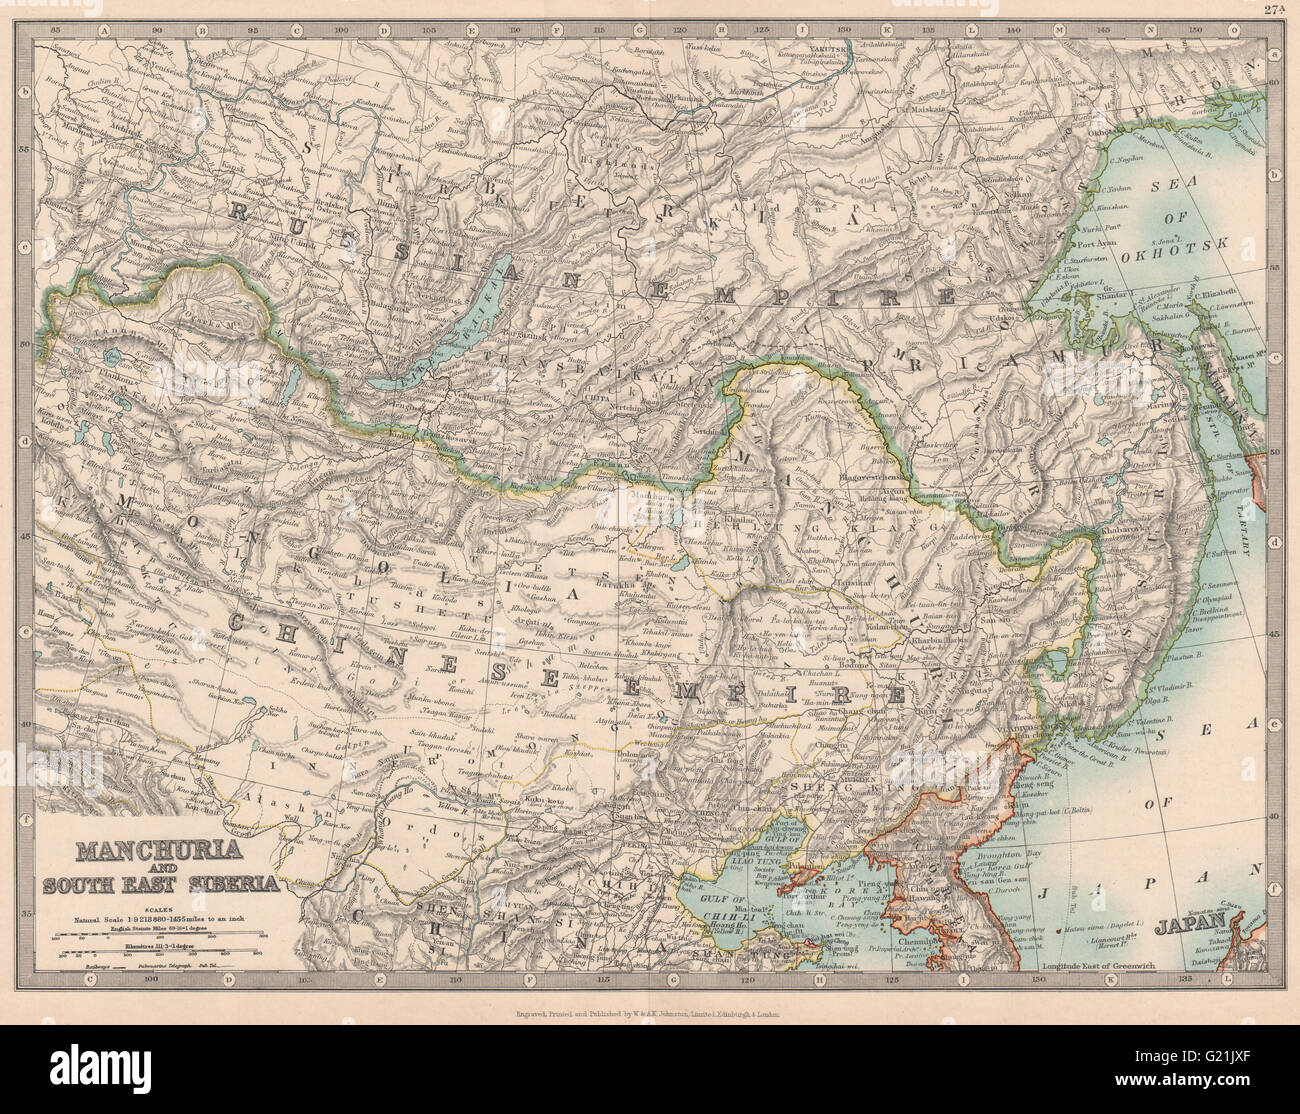 MANCHURIA U0026 SOUTH EAST SIBERIA Mongolia China Russia East Asia JOHNSTON  1912 Map   Stock Image